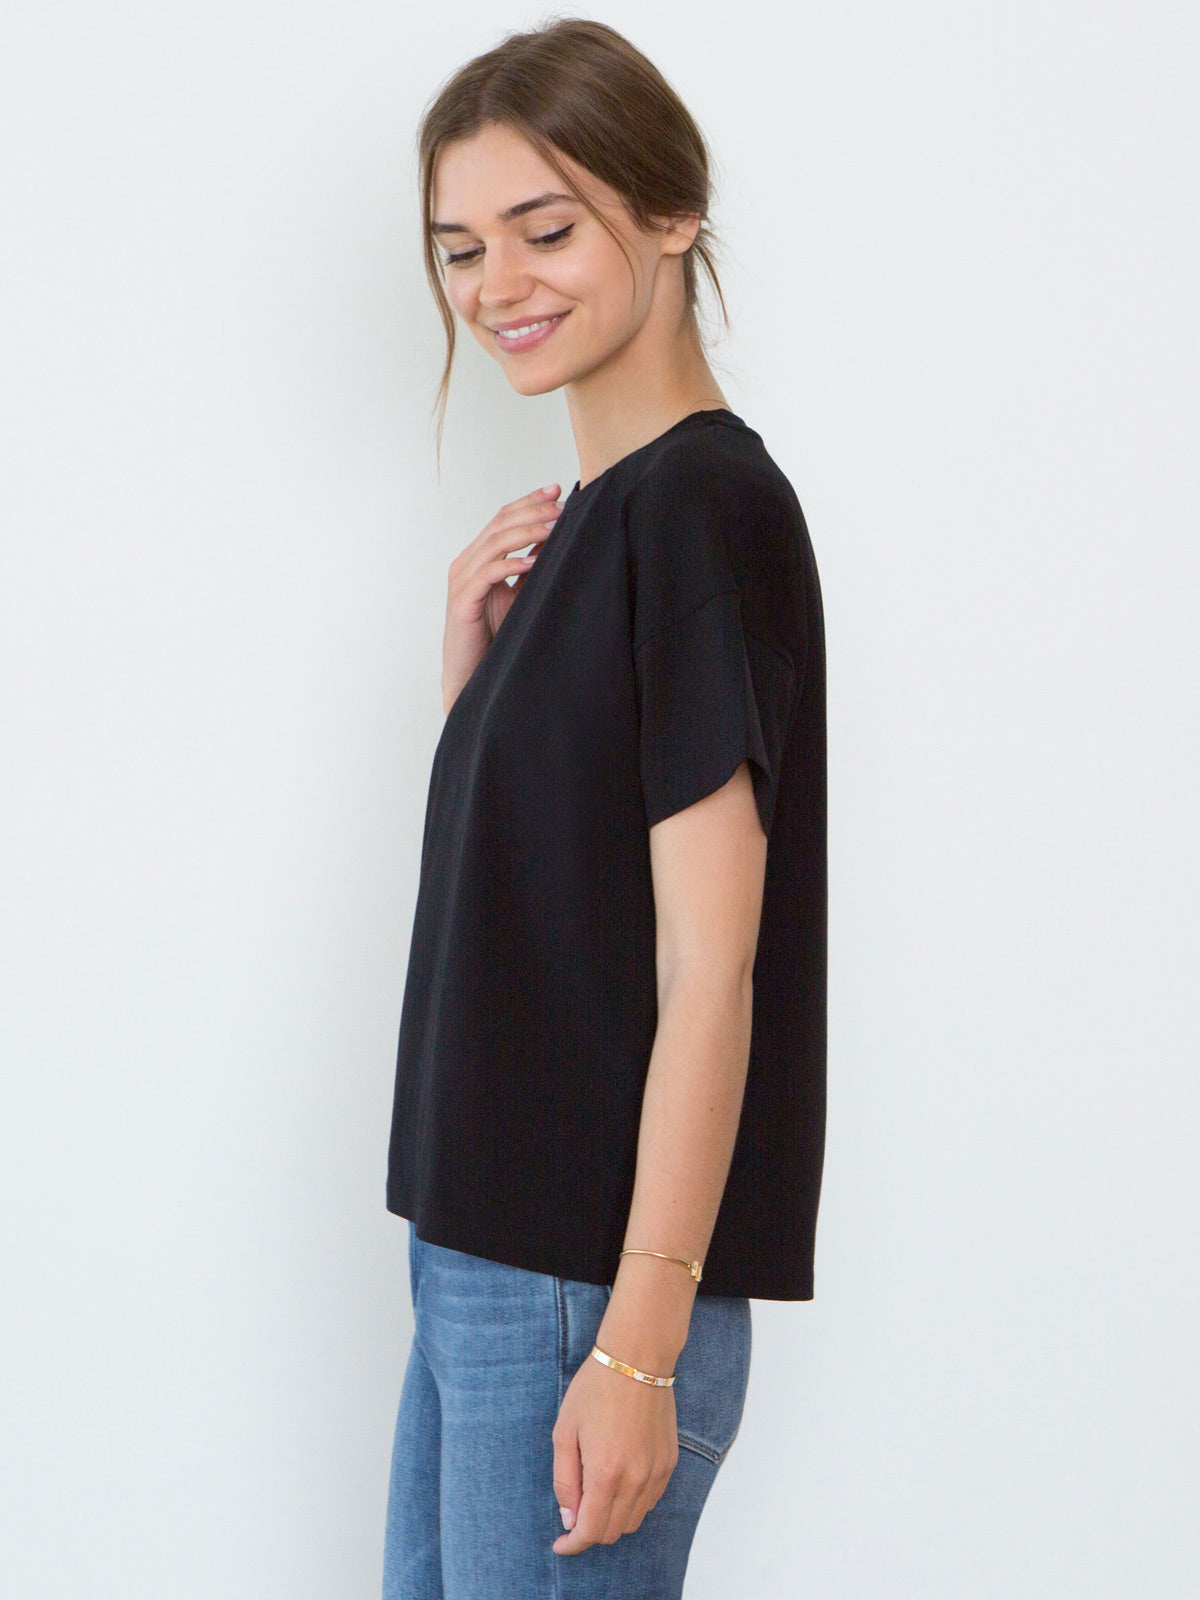 Bevin Organic Cotton Boyfriend T-Shirt | Black Bevin Organic Cotton Boyfriend T-Shirt | Black